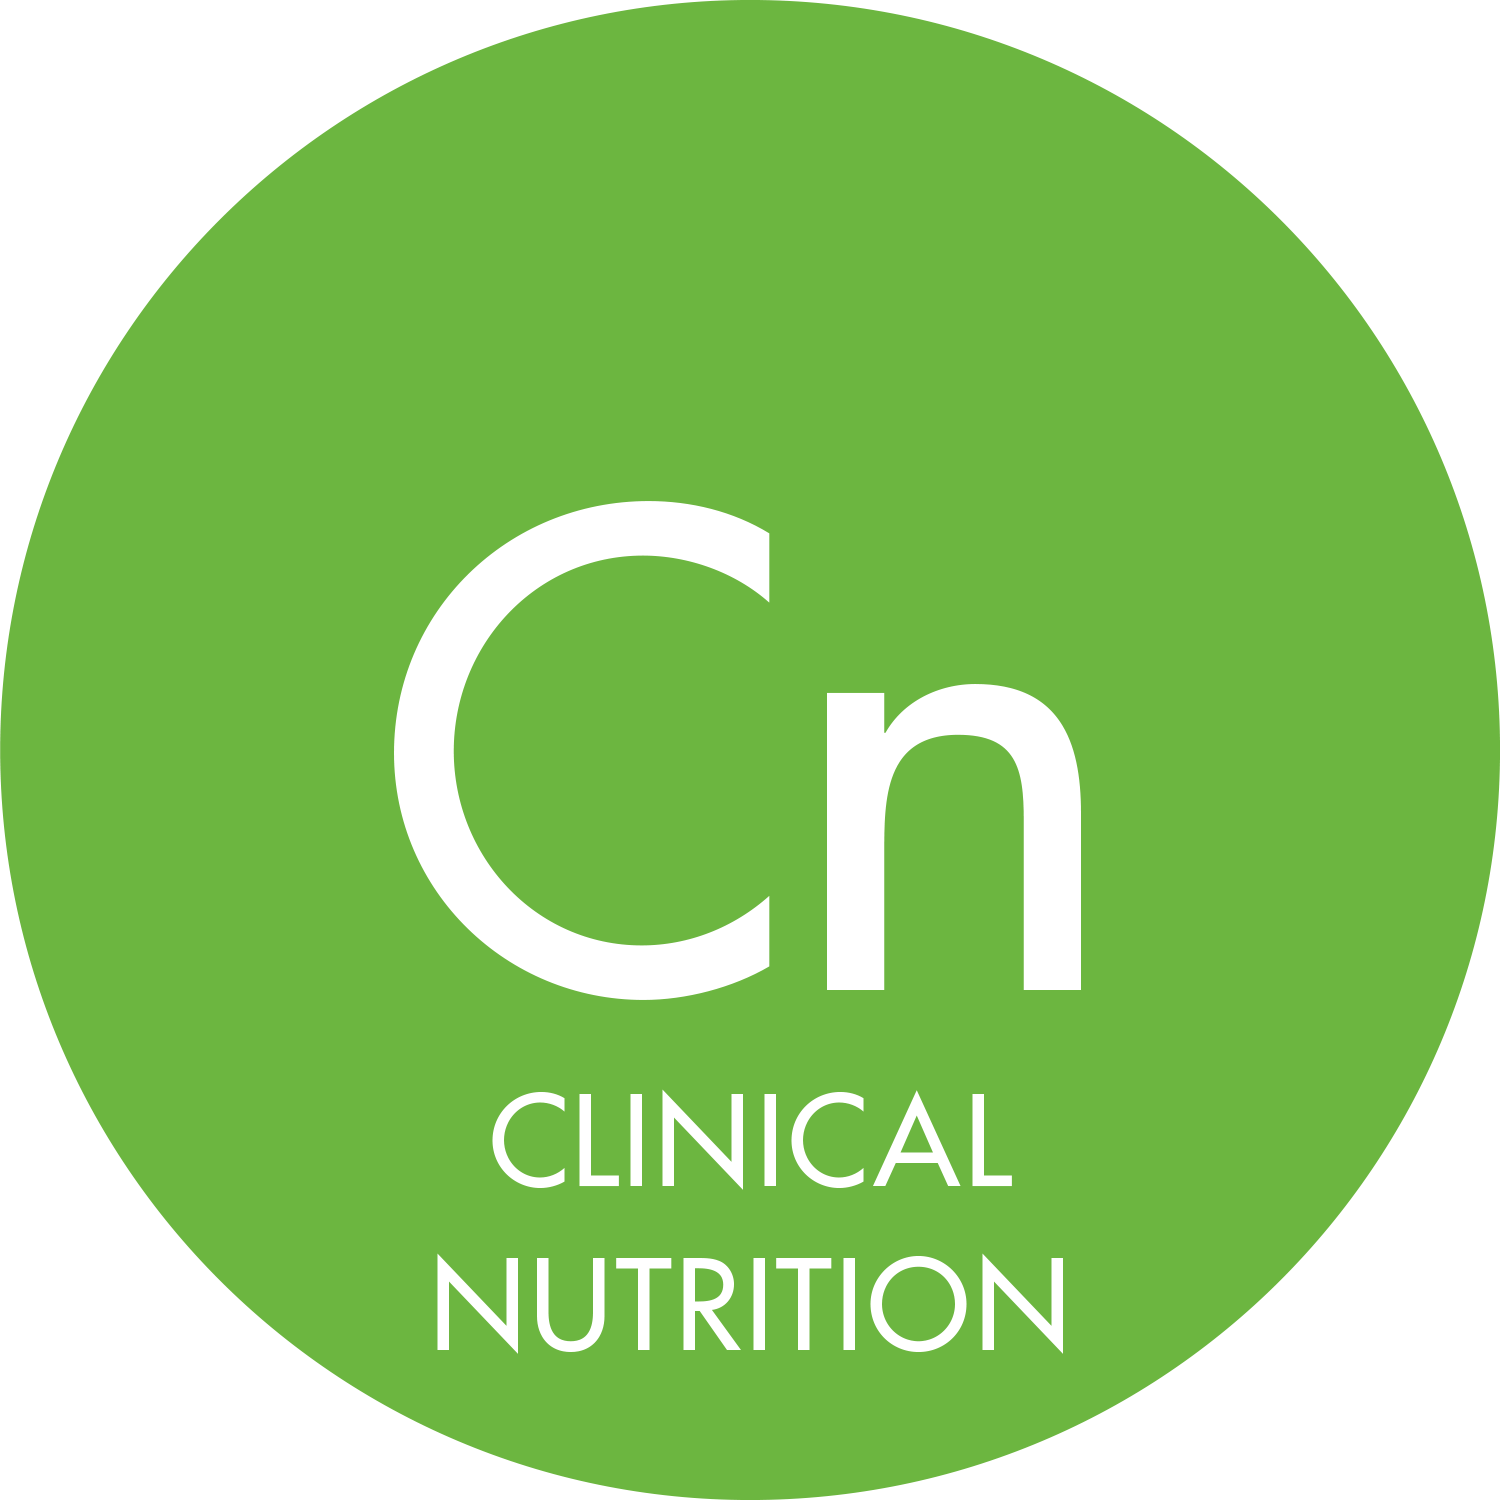 health, nutrition, clinical nutrition, optimum nutrition, diet